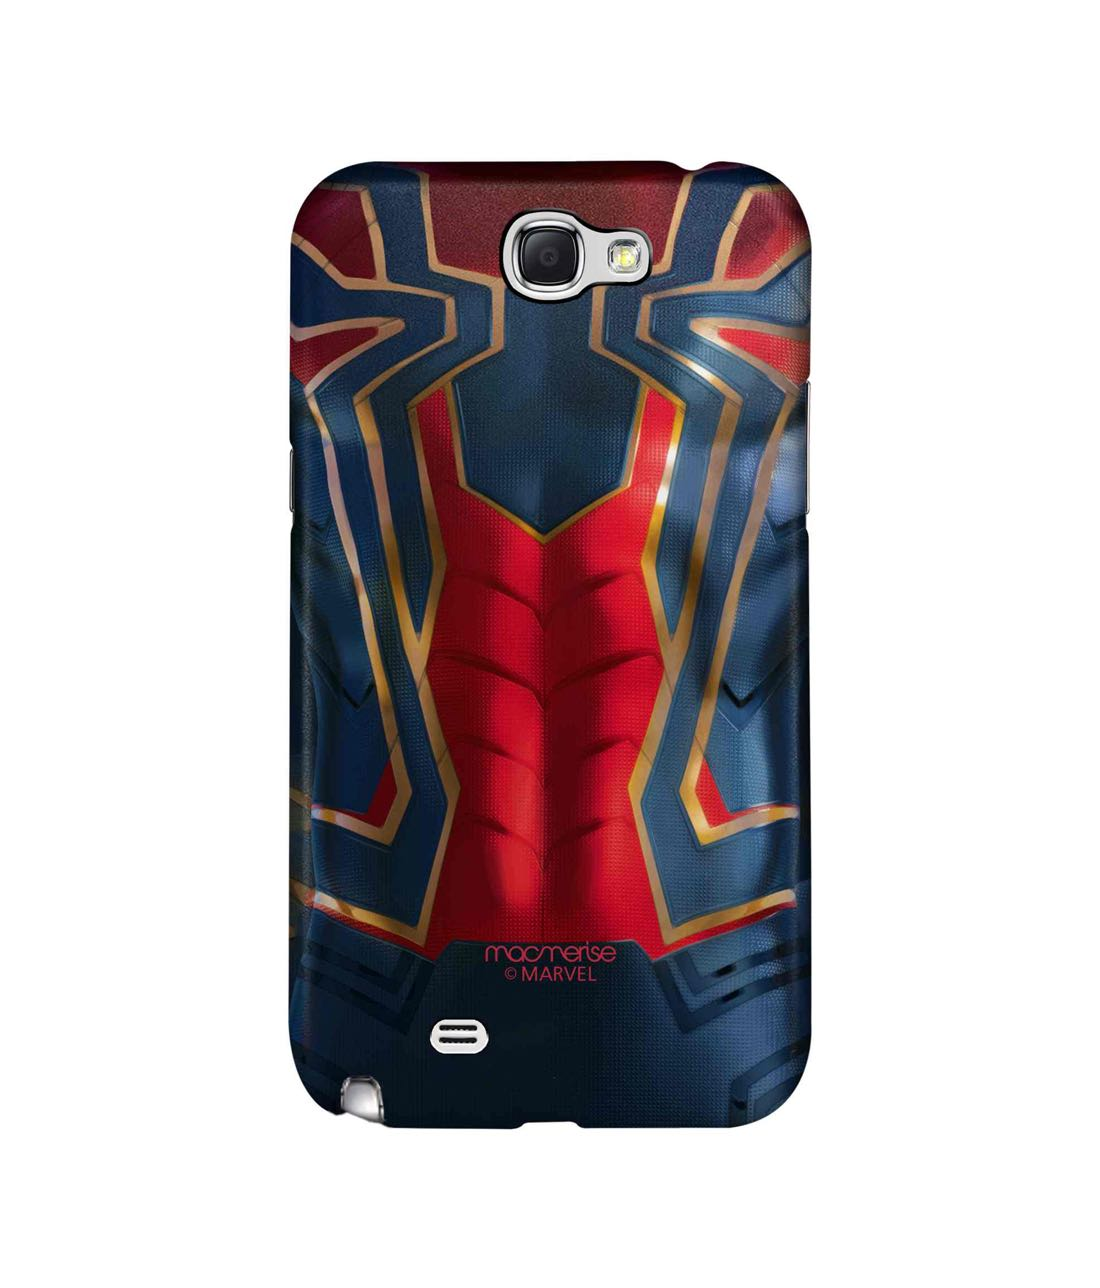 Spiderman Suit - Sublime Case for Samsung Note 2